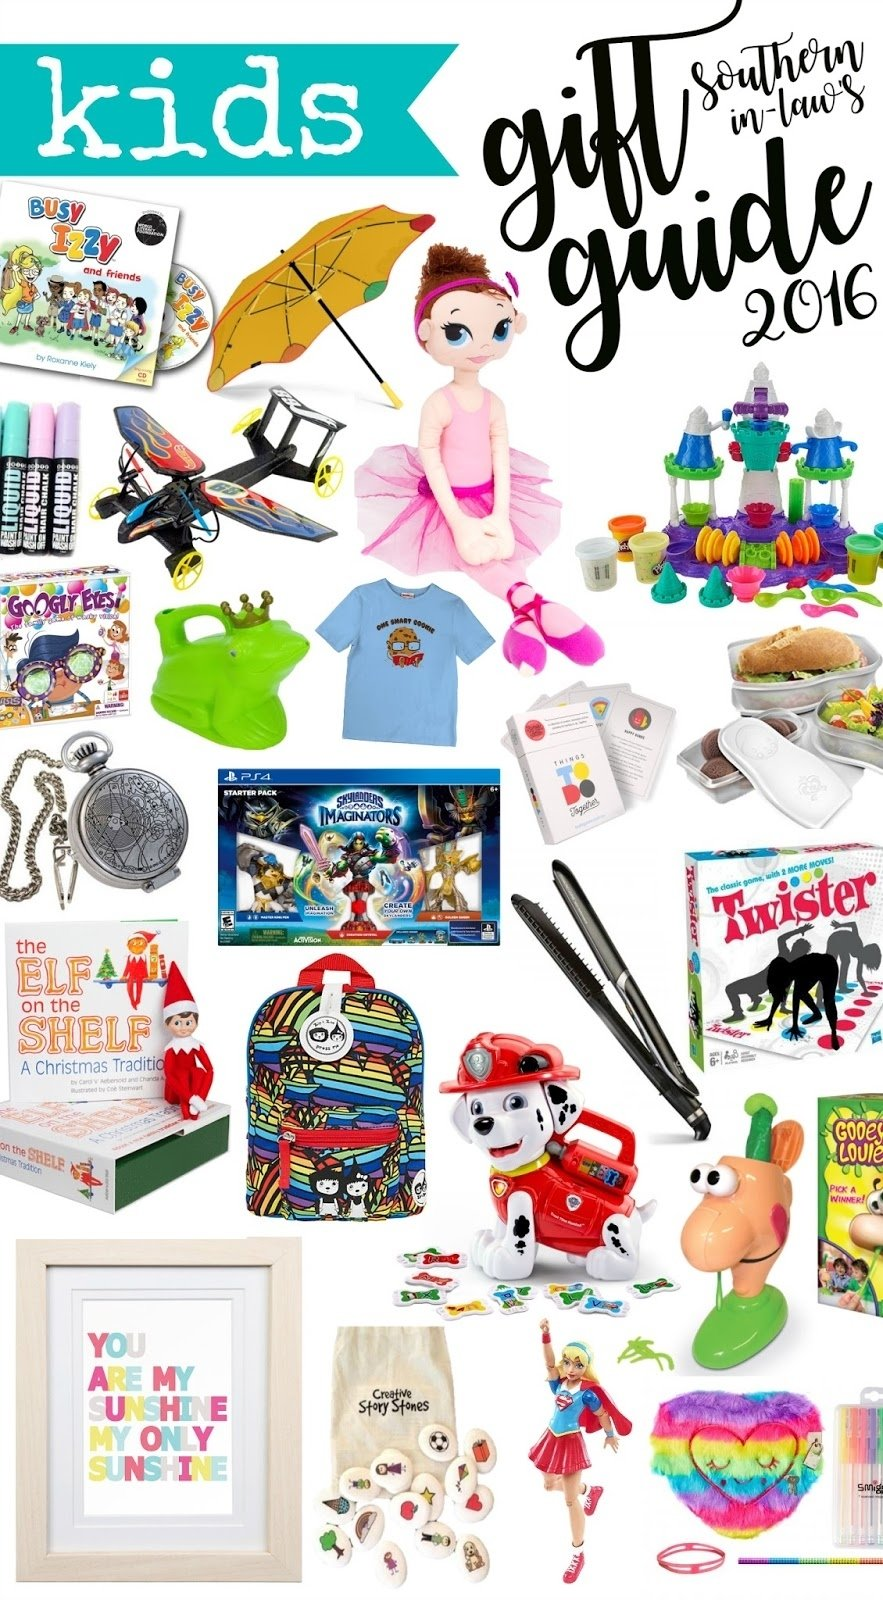 10 Attractive Holiday Gift Ideas For Kids southern in law 2016 kids christmas gift guide 1 2021